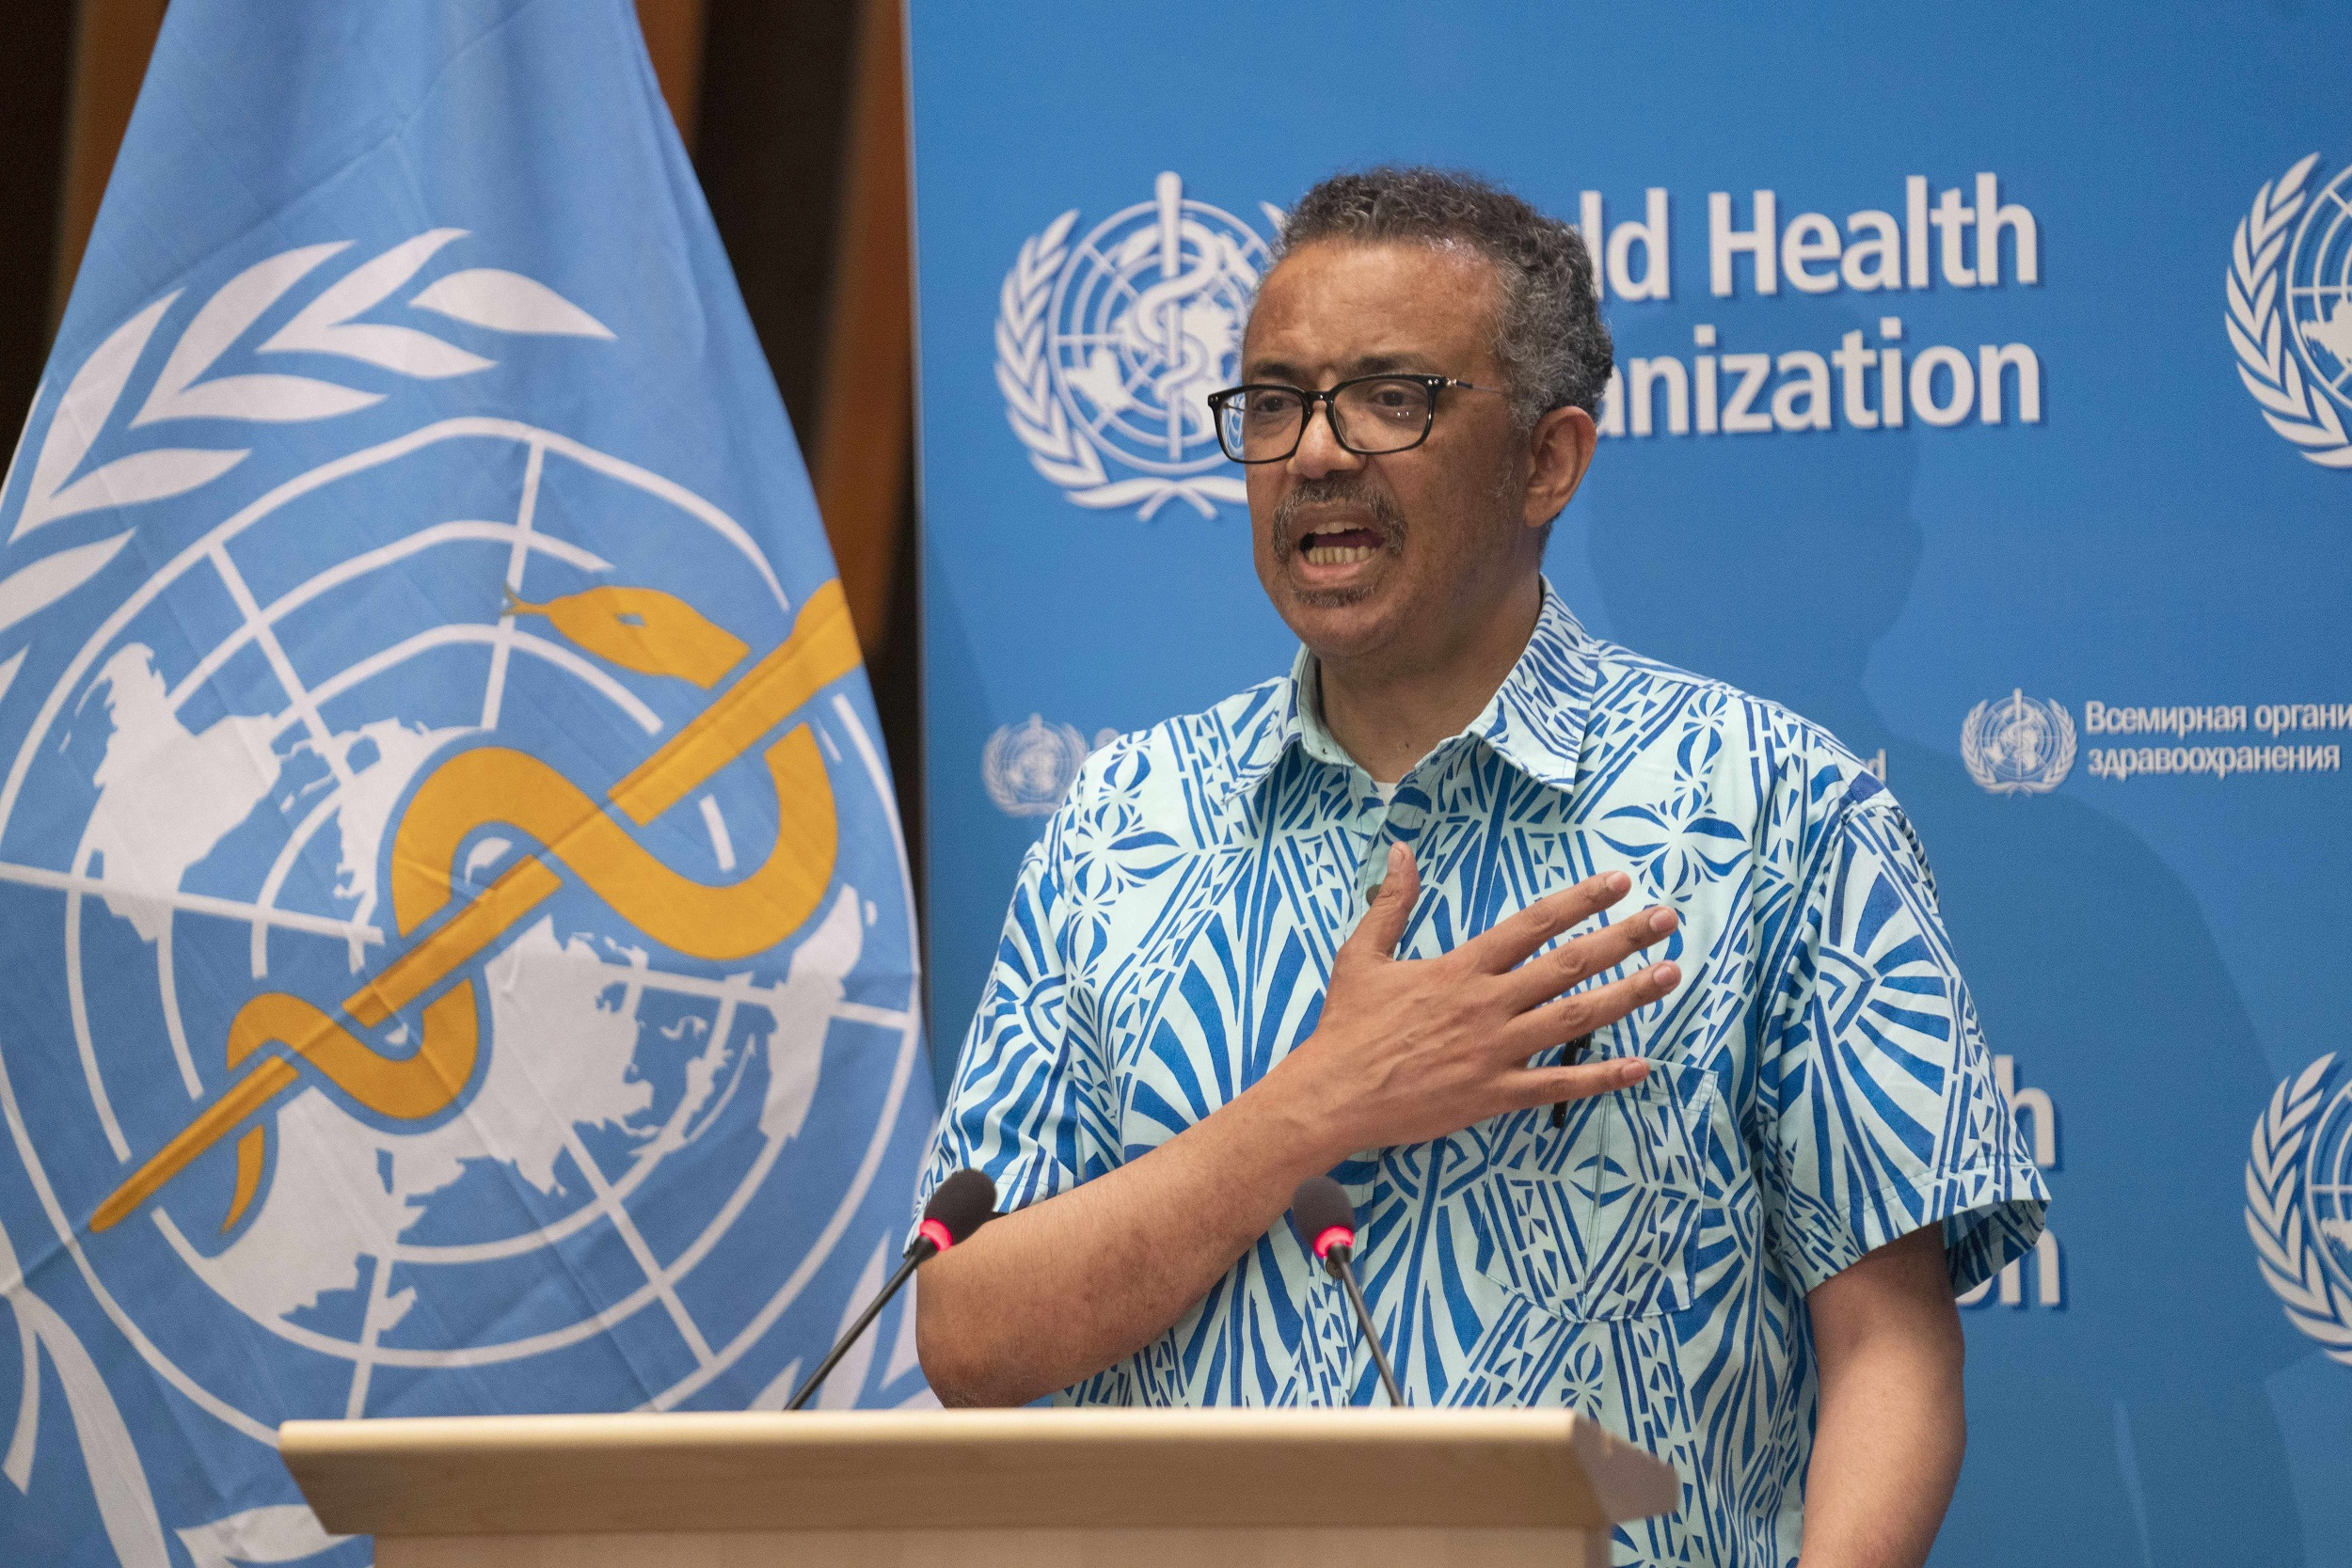 The WHO's eighth director-general, in post since 2017, is 55-year-old former Ethiopian health and foreign minister Tedros Adhanom Ghebreyesus.